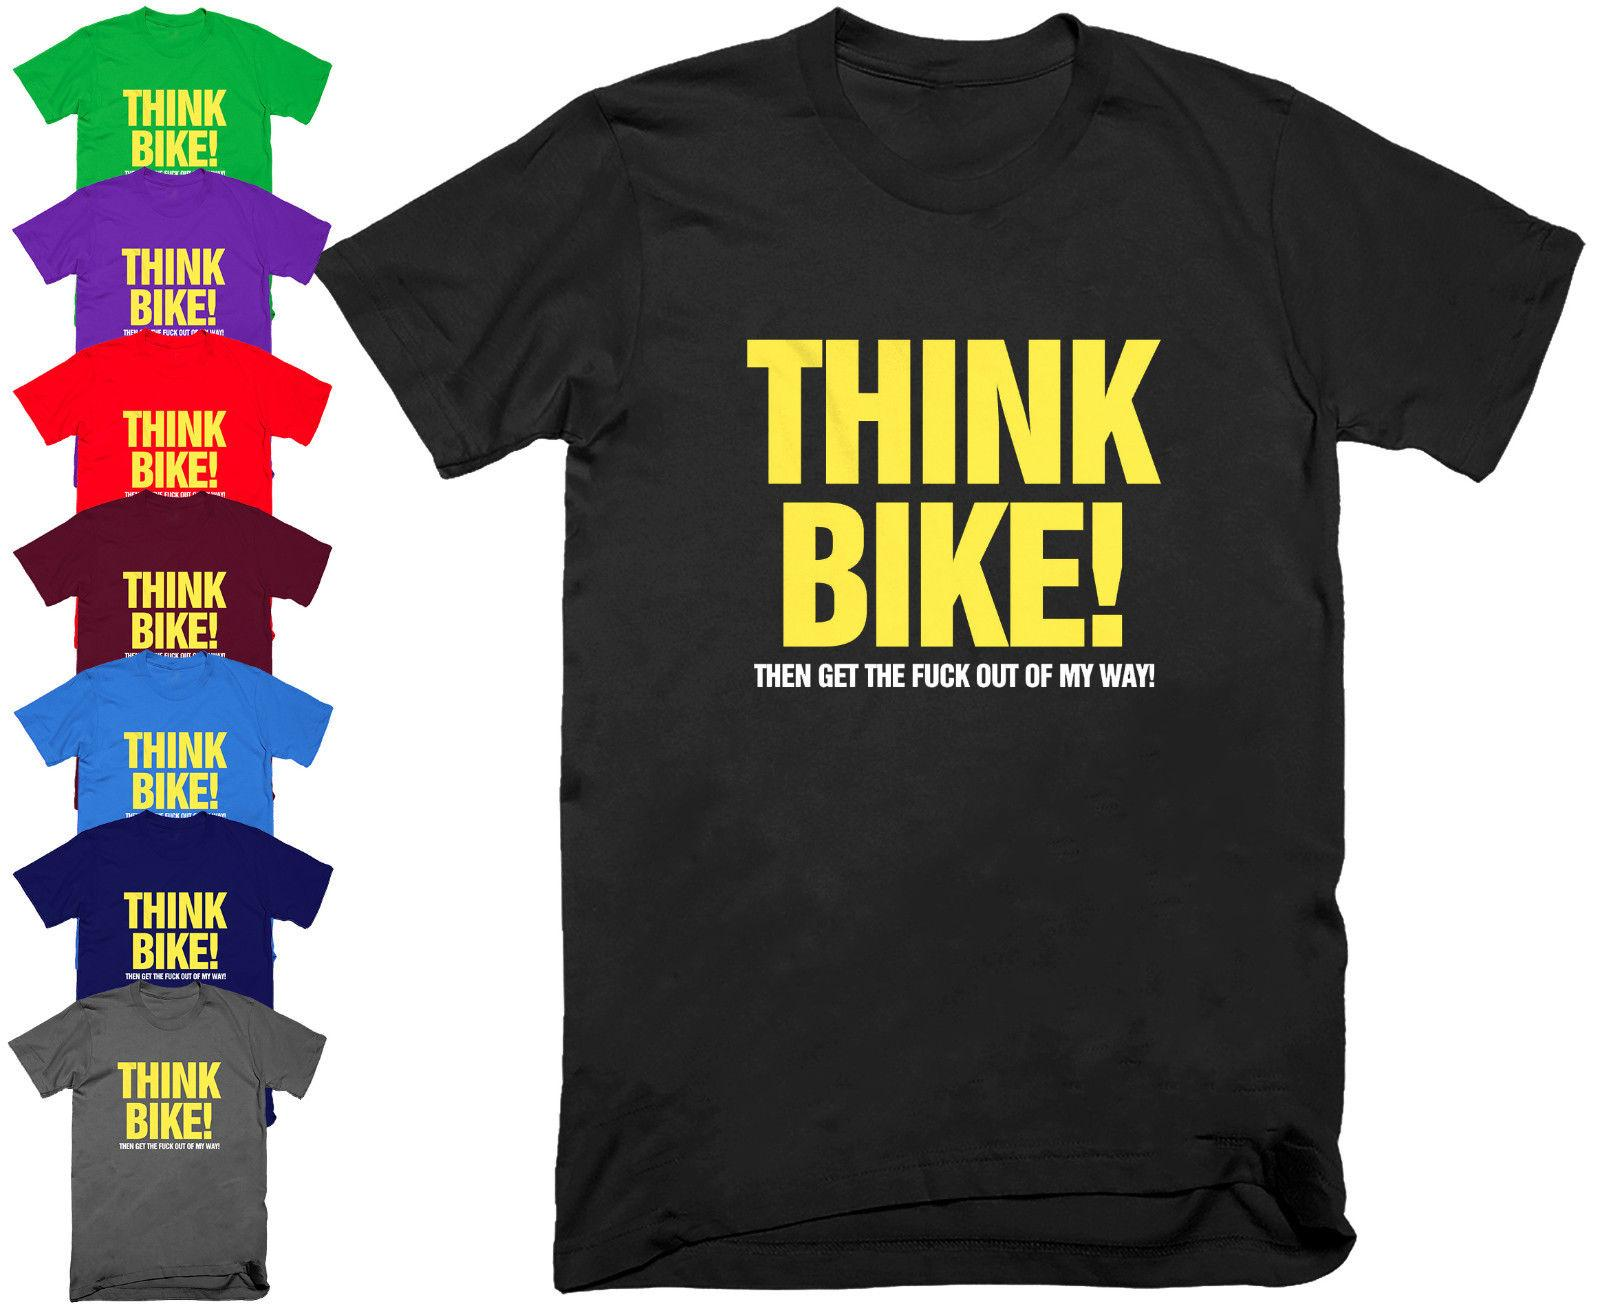 Think Bike Motorcycle Biker T Shirt Funny Birthday Present Gift Dad Top S 5XL Designer Coolest Shirts From Daddymaher 1168